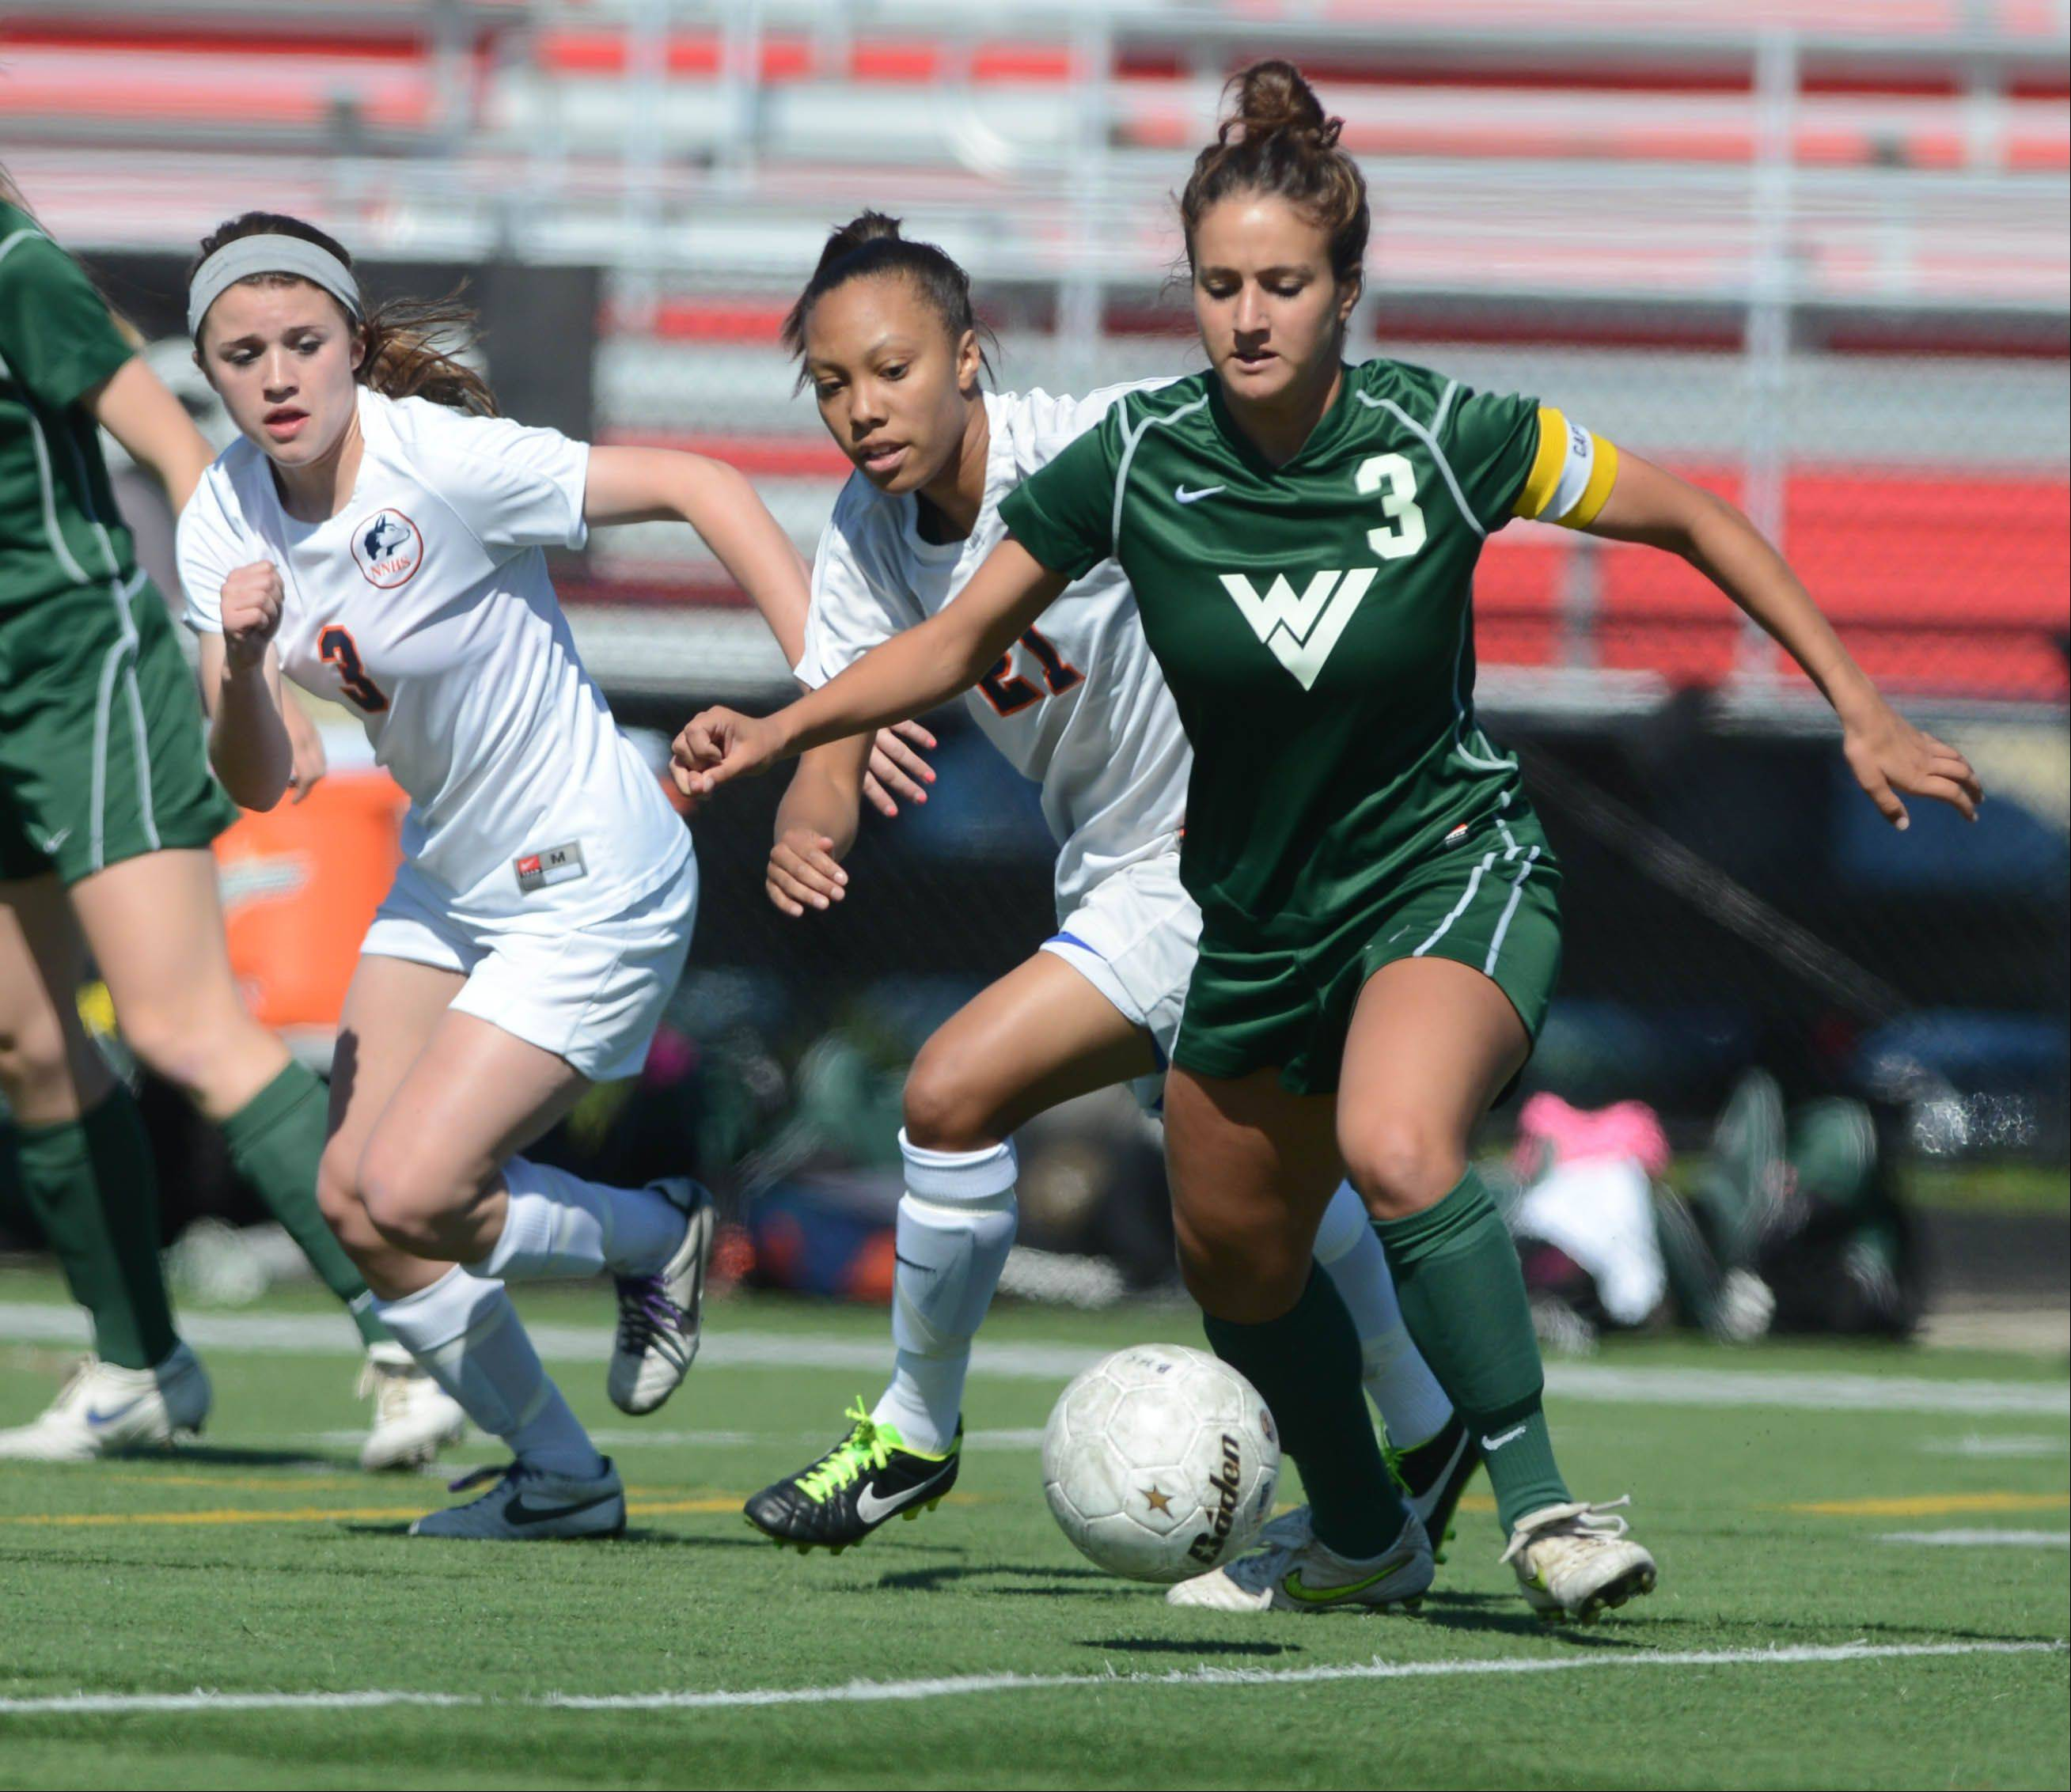 Jenna Romano of Waubonsie moves the ball while Claire Hilburger,left, and Zoe Swift of Naperville North follow. This took place during the Class 3A Bolingbrook girls soccer sectional final.